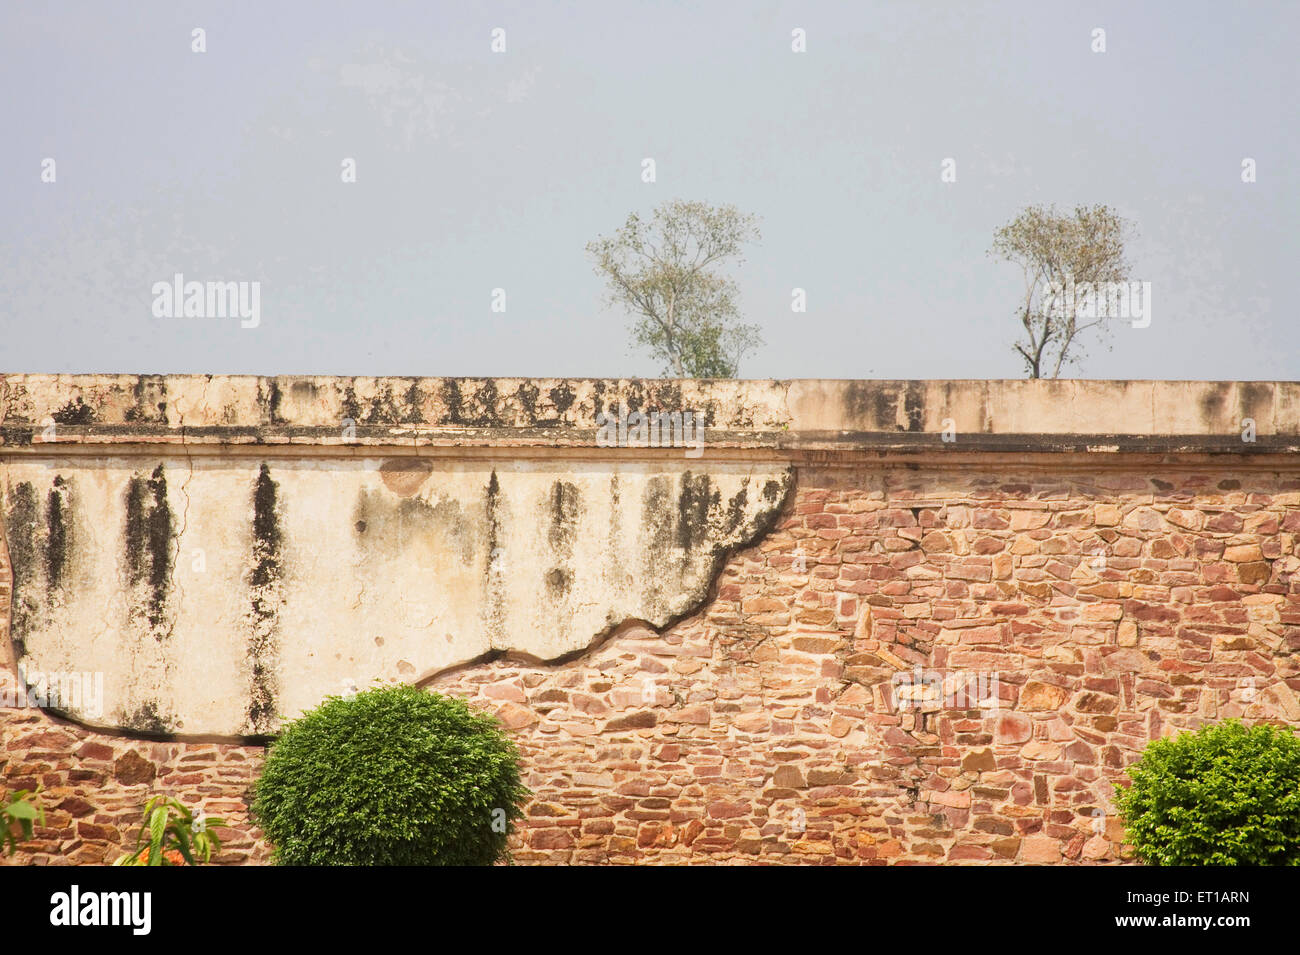 Old wall composition with two trees behind red stone Mughal architecture ; Fatehpur Sikiri ; Uttar Pradesh ; India - Stock Image